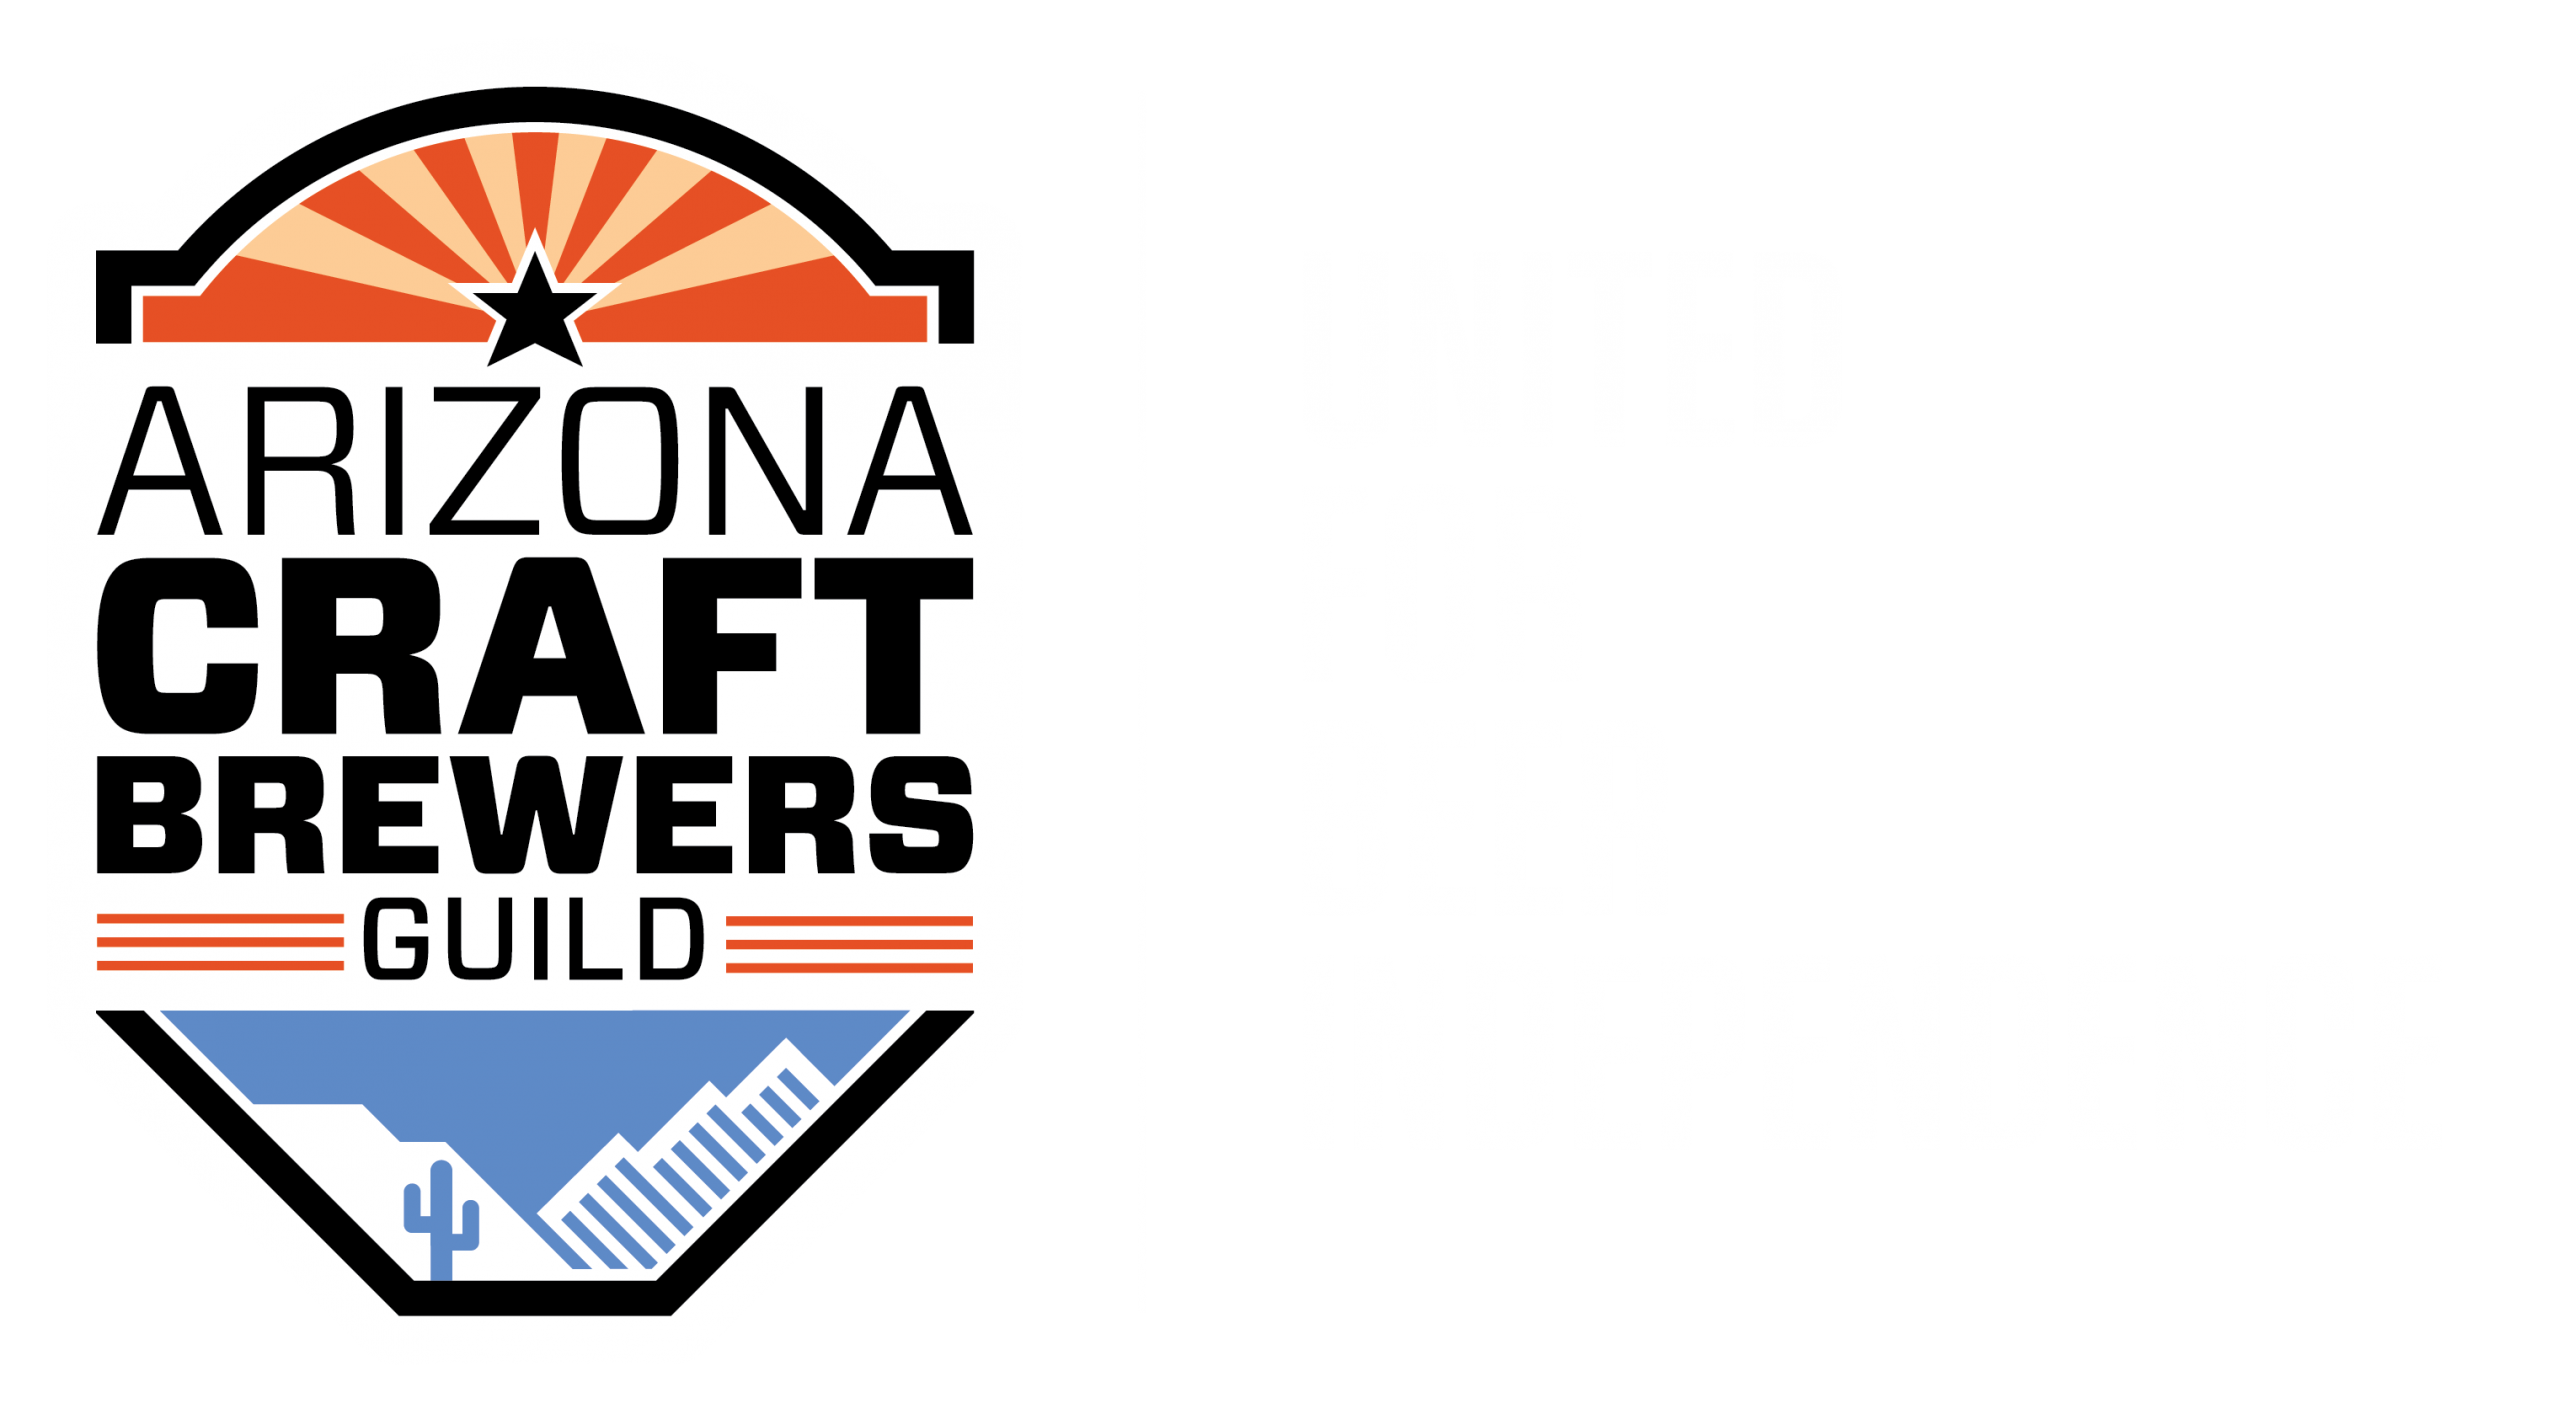 Crooked Tooth Brewing Co. | Arizona Craft Brewers Guild